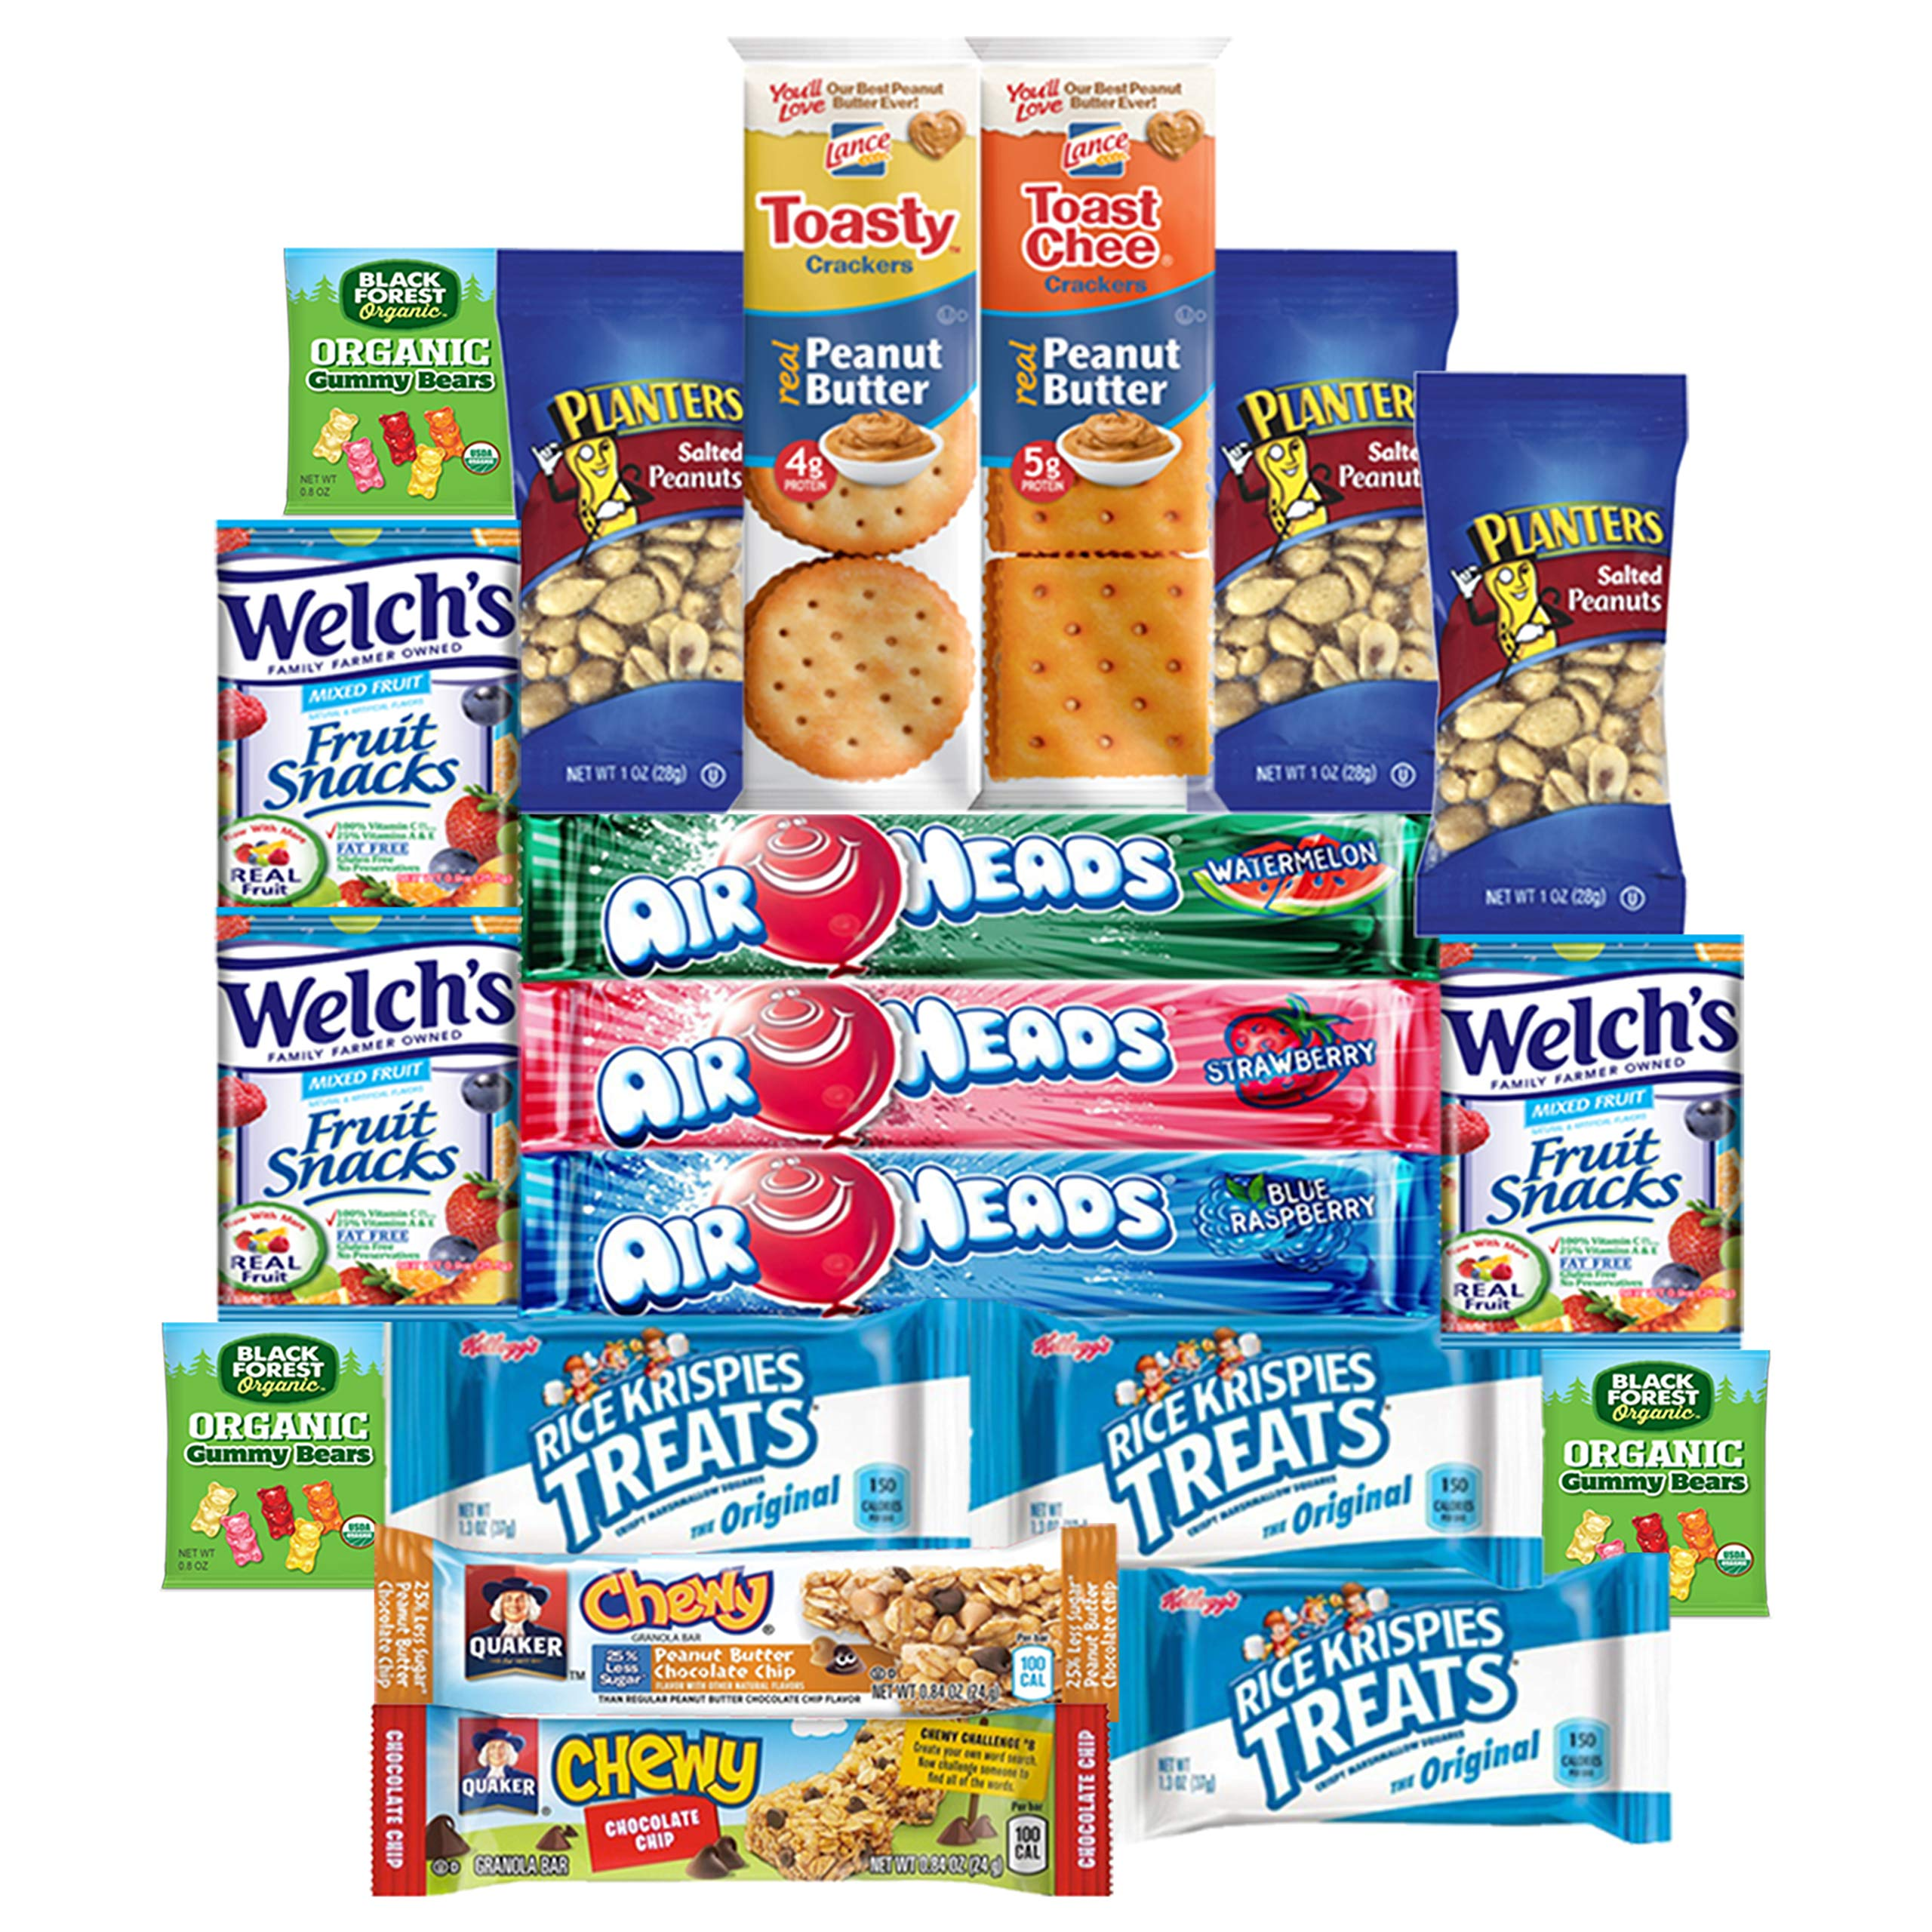 Snack Chest Care Package (40 Count) Variety Snacks Gift Box - College Students, Military, Work or Home - Over 3 Pounds of Chips Cookies & Candy! by Snack Chest (Image #3)